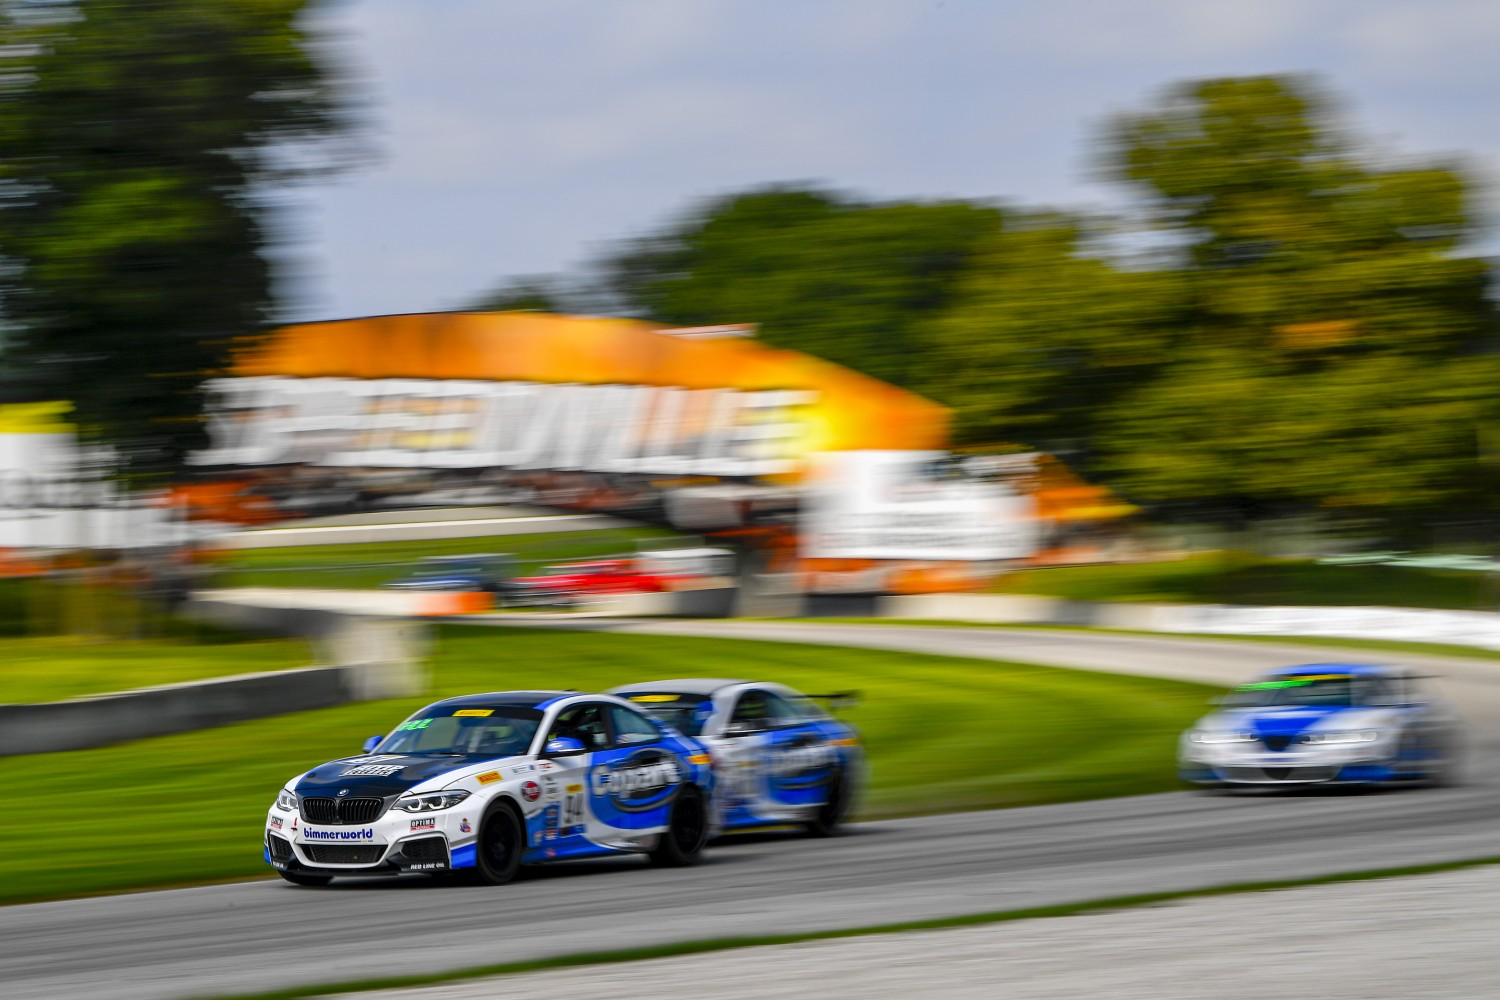 #94 BMW M240iR Cup of Chandler Hull  with Copart / BimmerWorld Racing  Road America World Challenge America , Elkhart Lake WI